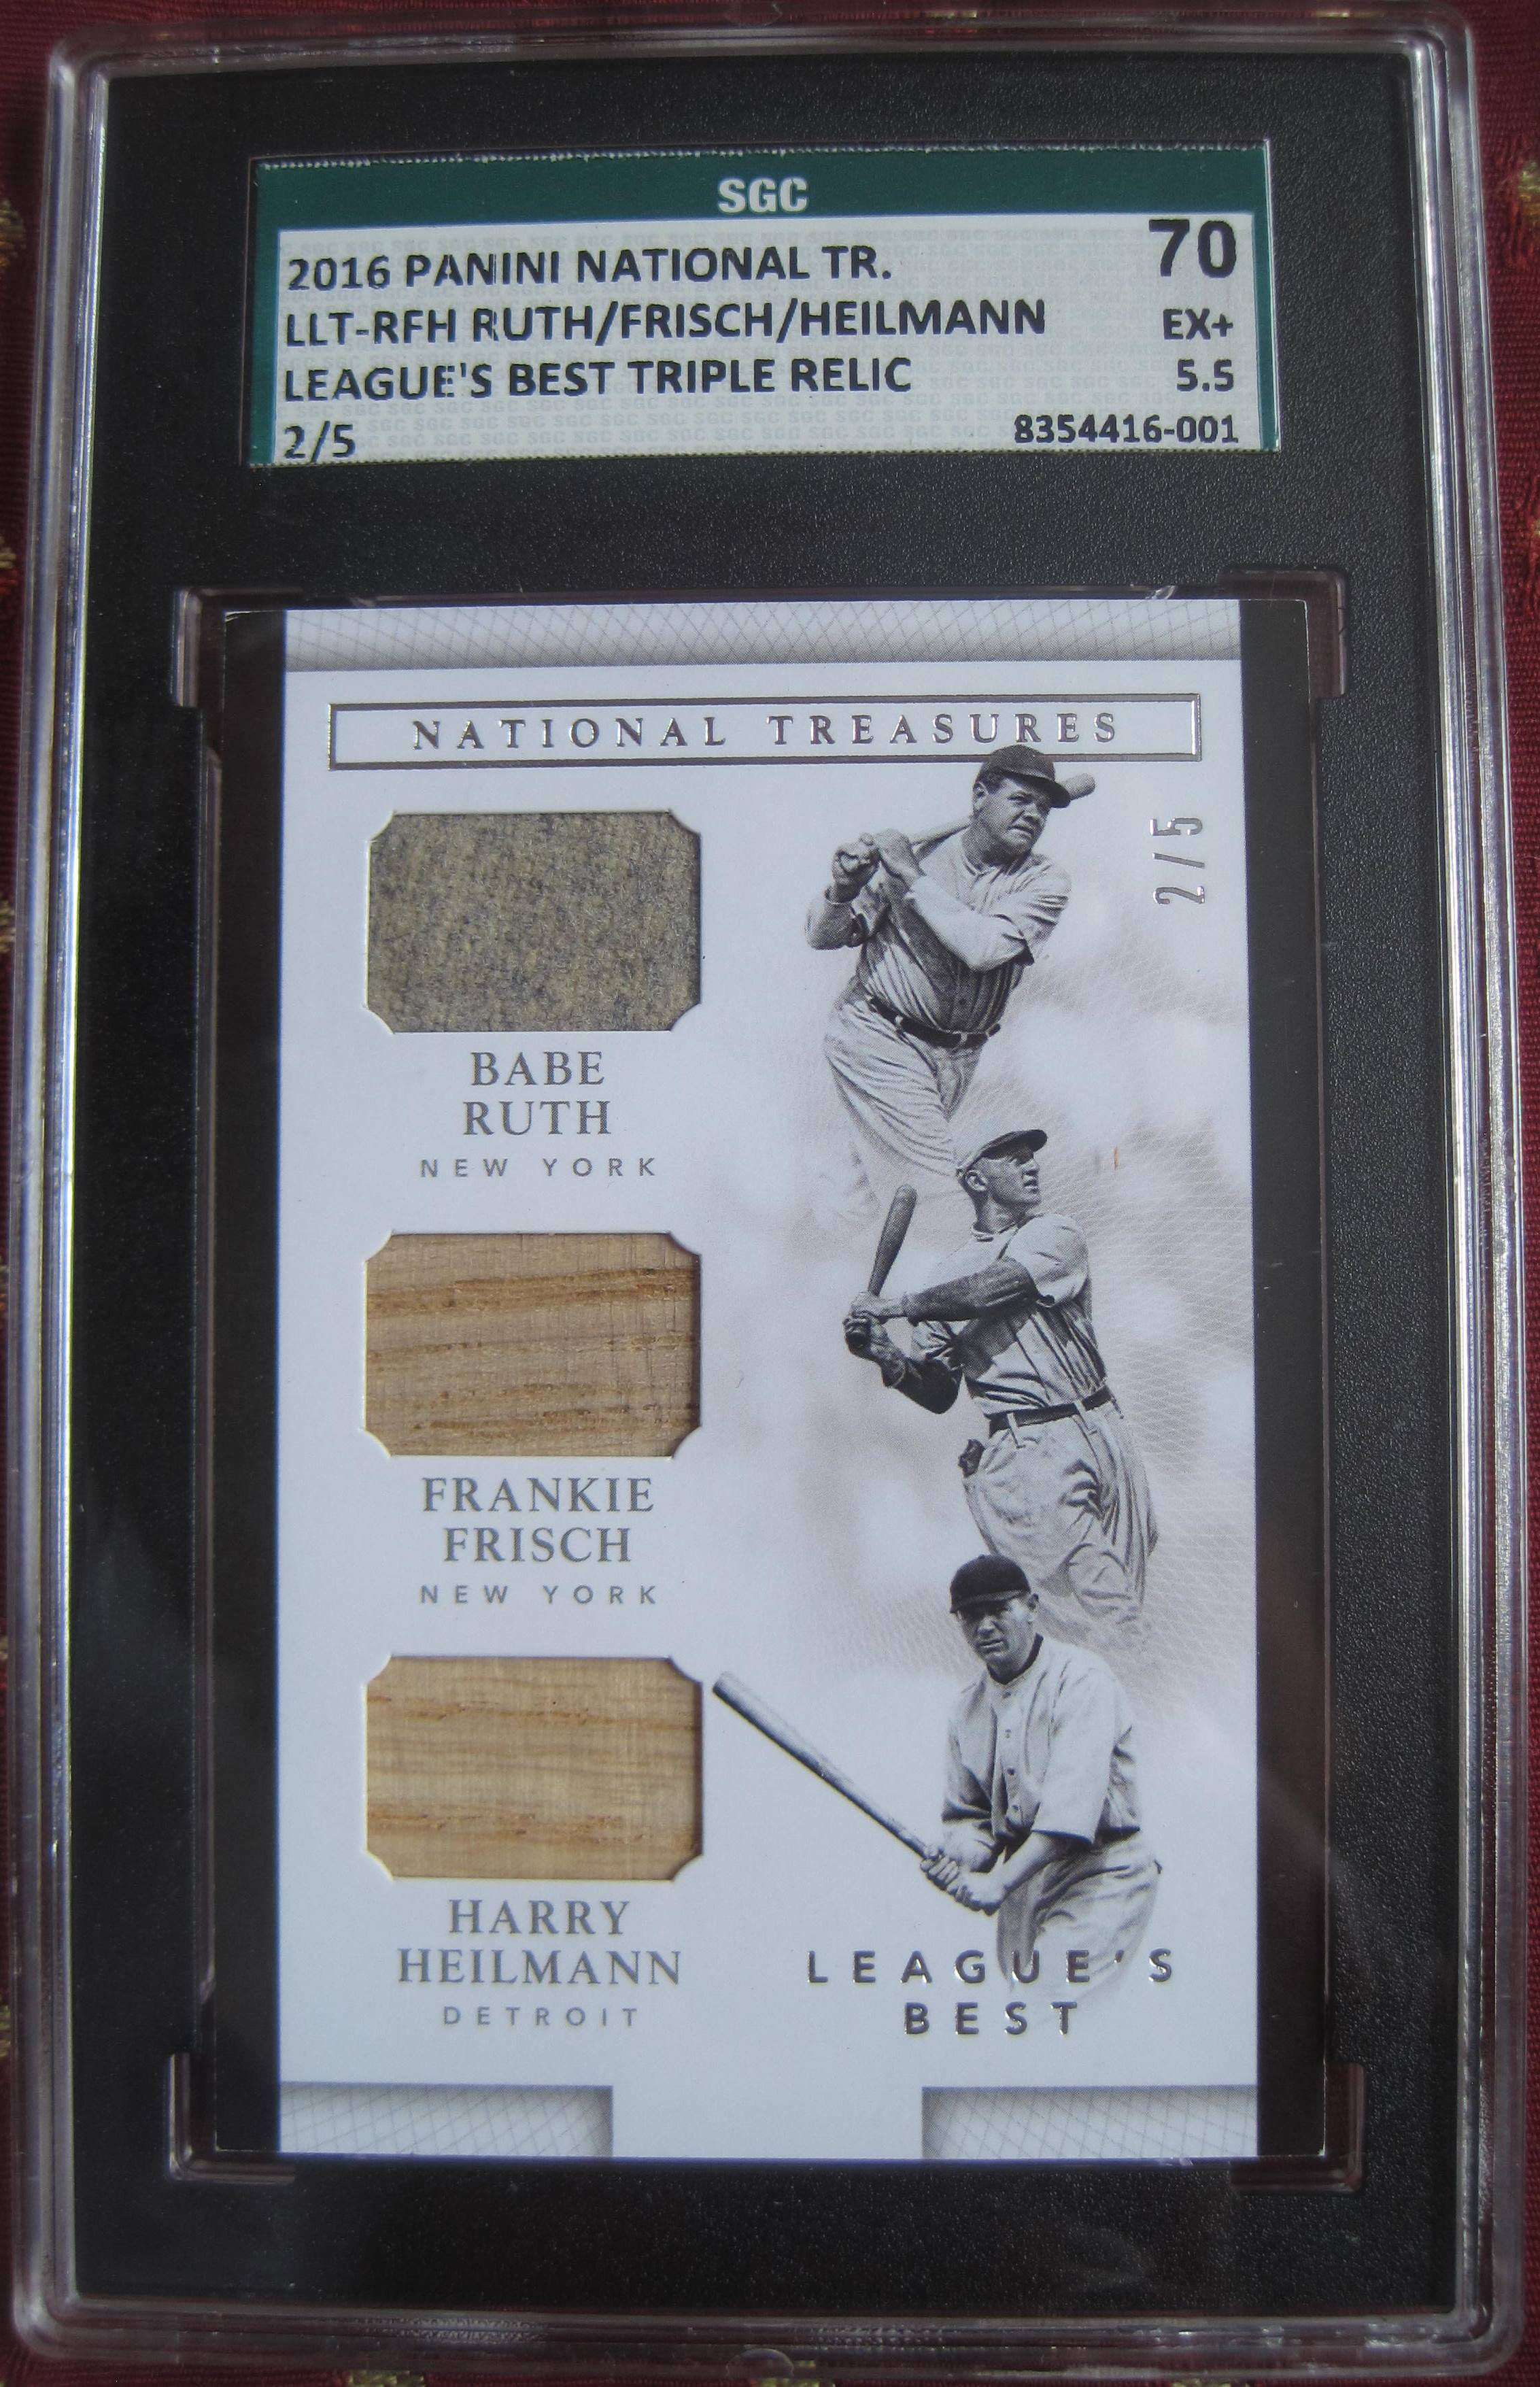 pretty nice cb687 8c145 BABE RUTH 2/5 GAME USED JERSEY 2016 PANINI NATIONAL TREASURES FRISCH  HEILMANN!! | qualitycards